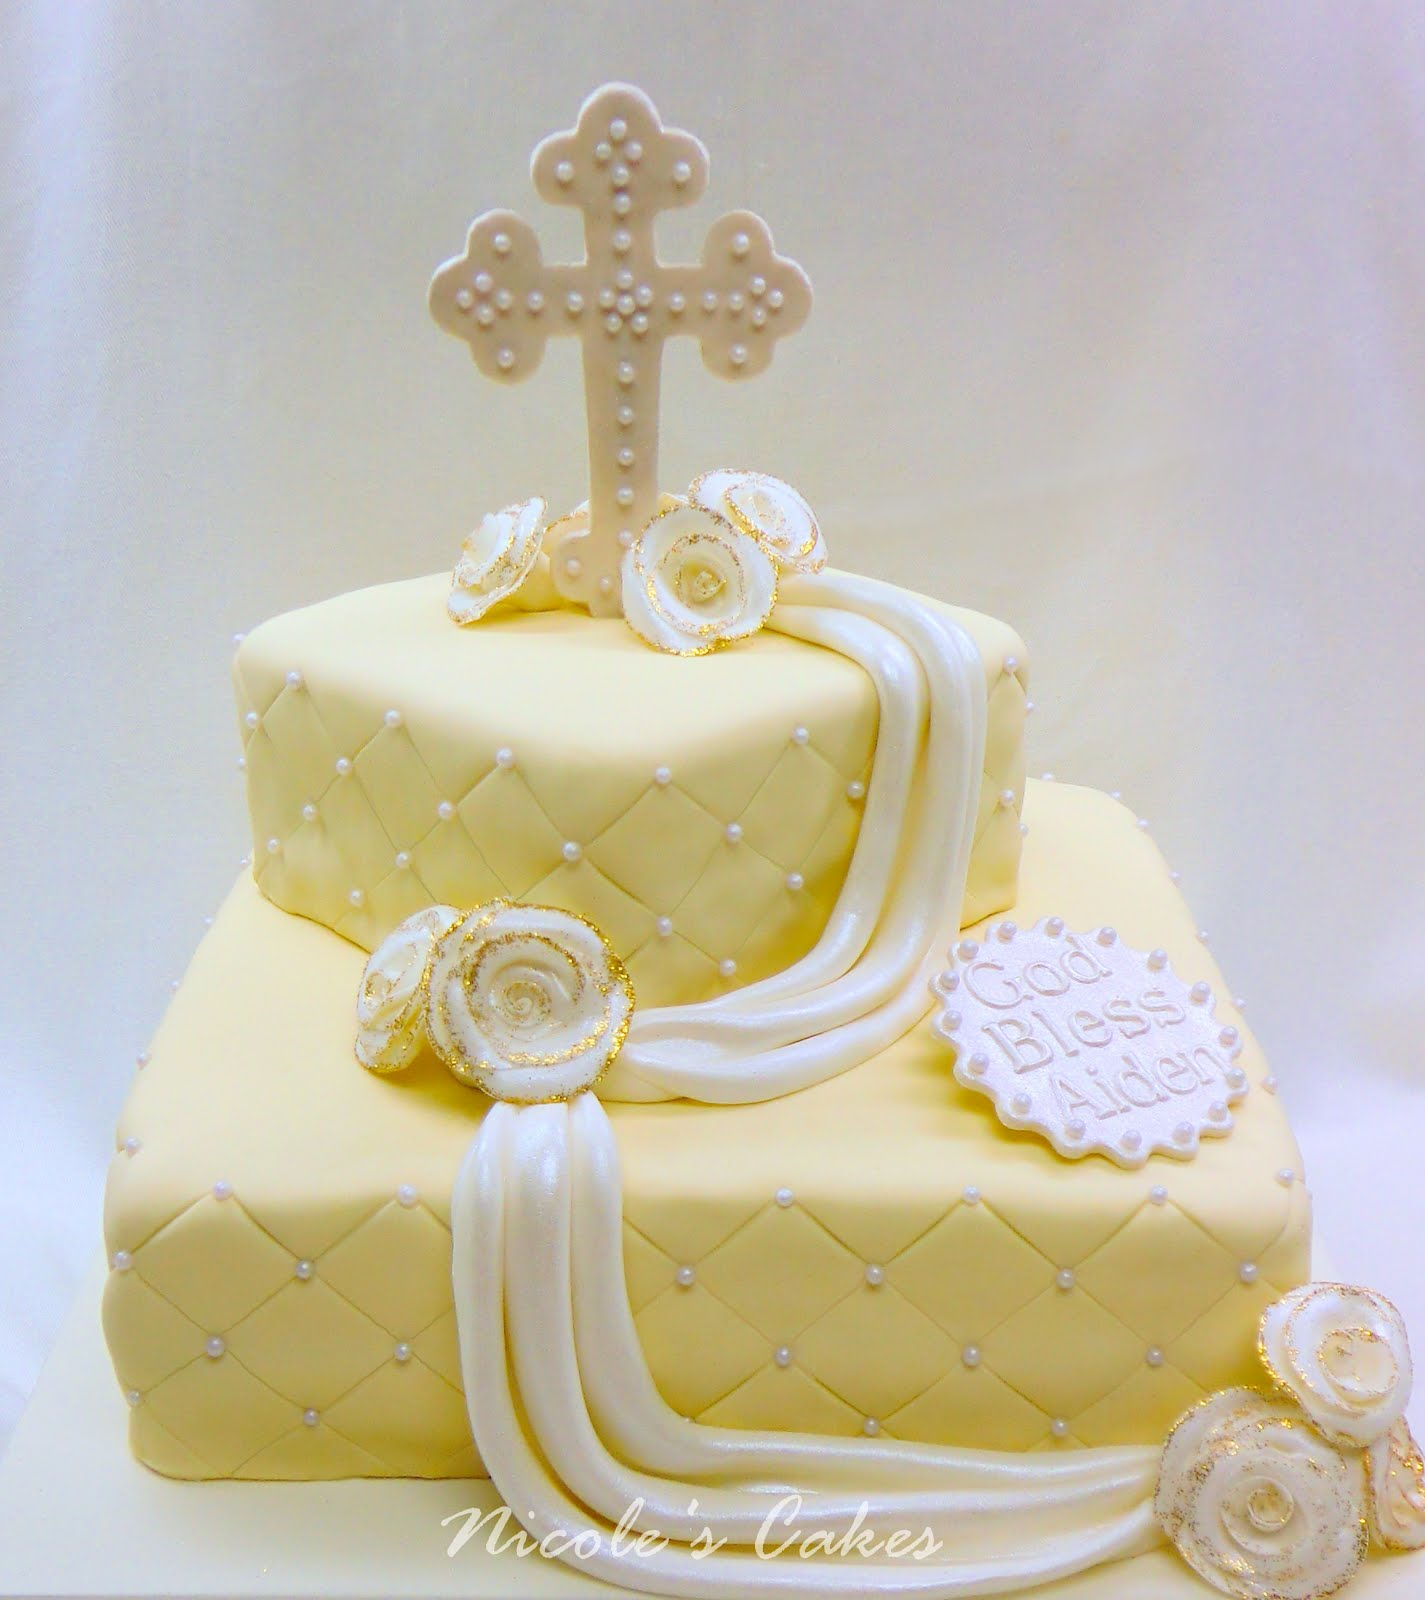 Confections, Cakes & Creations!: Ivory & Pearl Christening ...